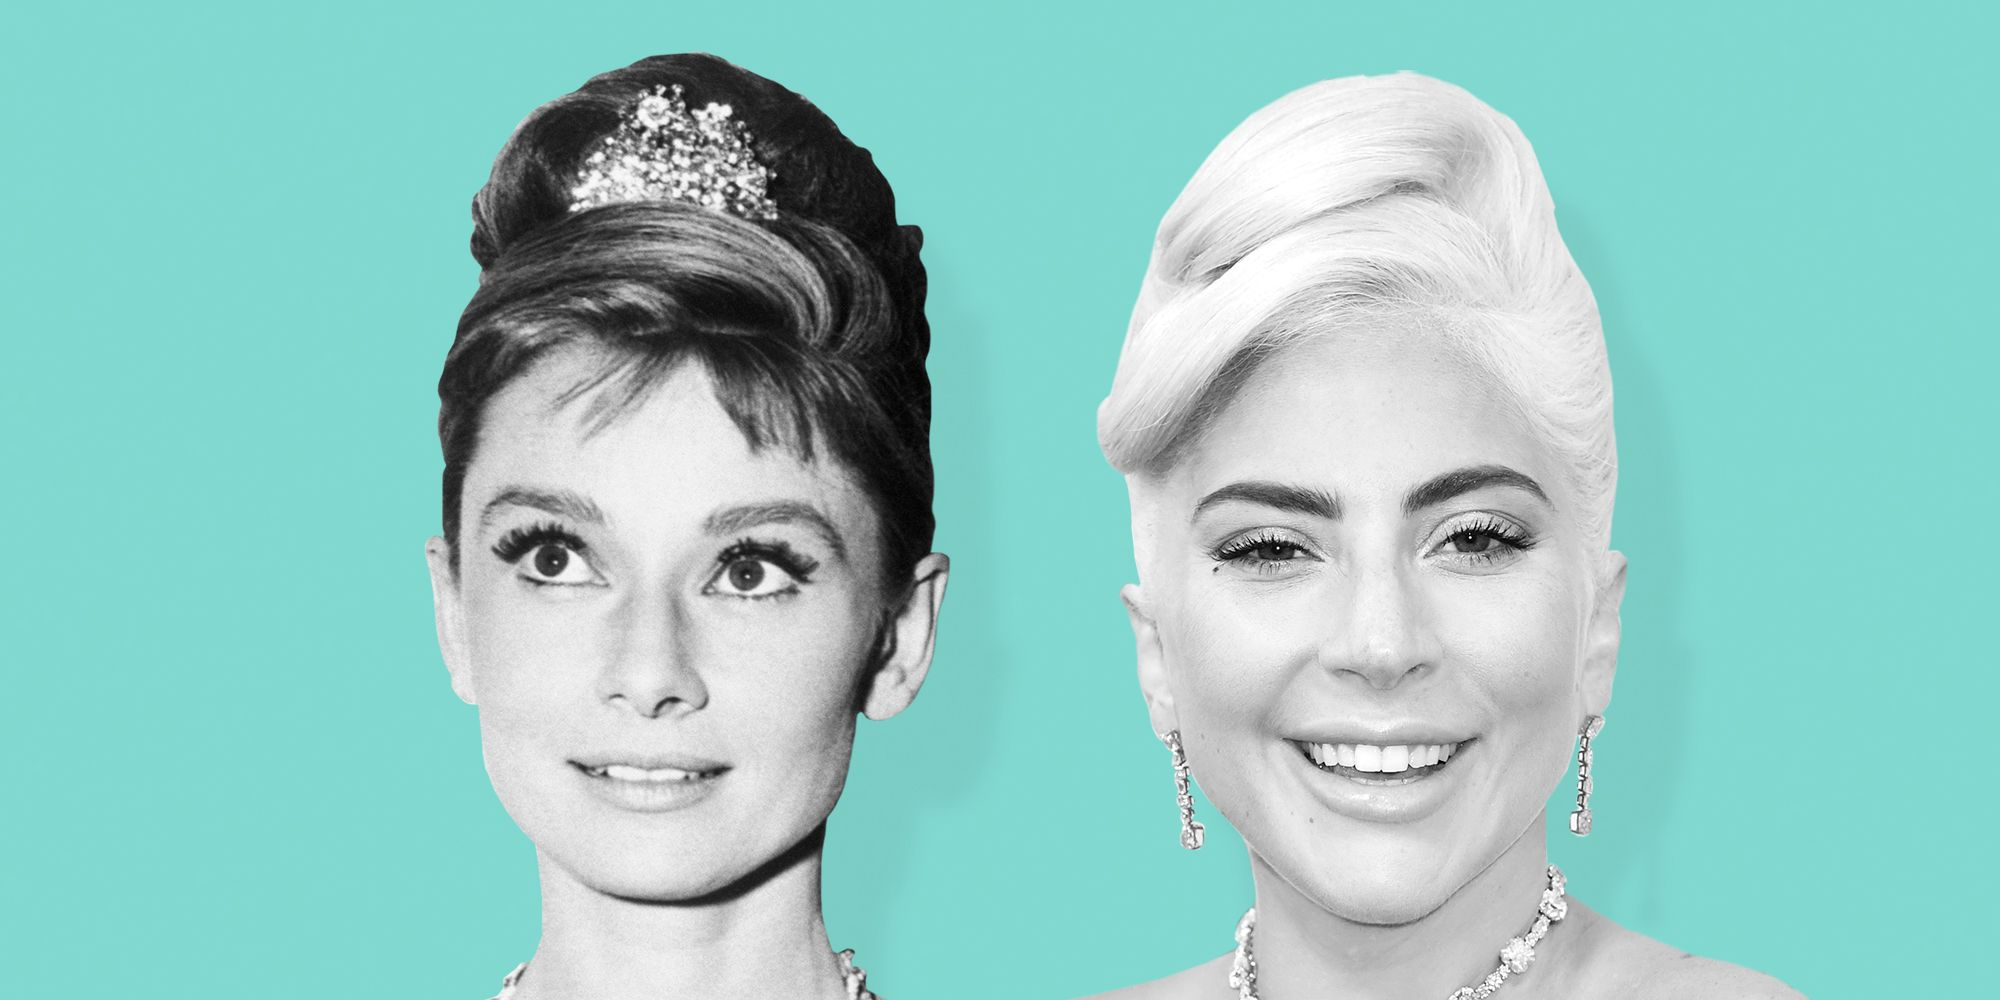 Lady Gaga and Audrey Hepburn in the Tiffany Diamond